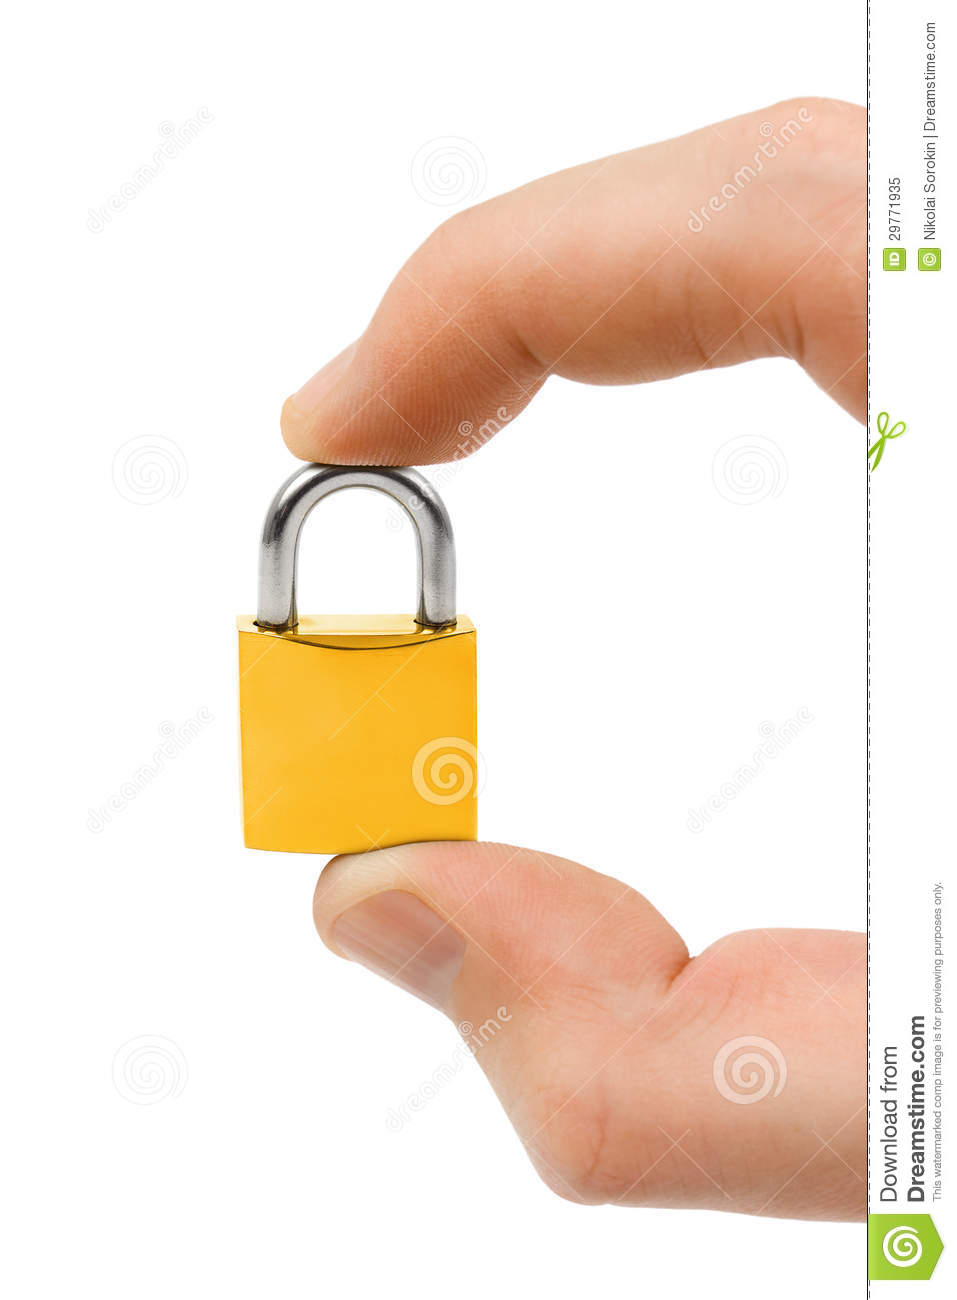 Small Lock In Hand Royalty Free Stock Photo